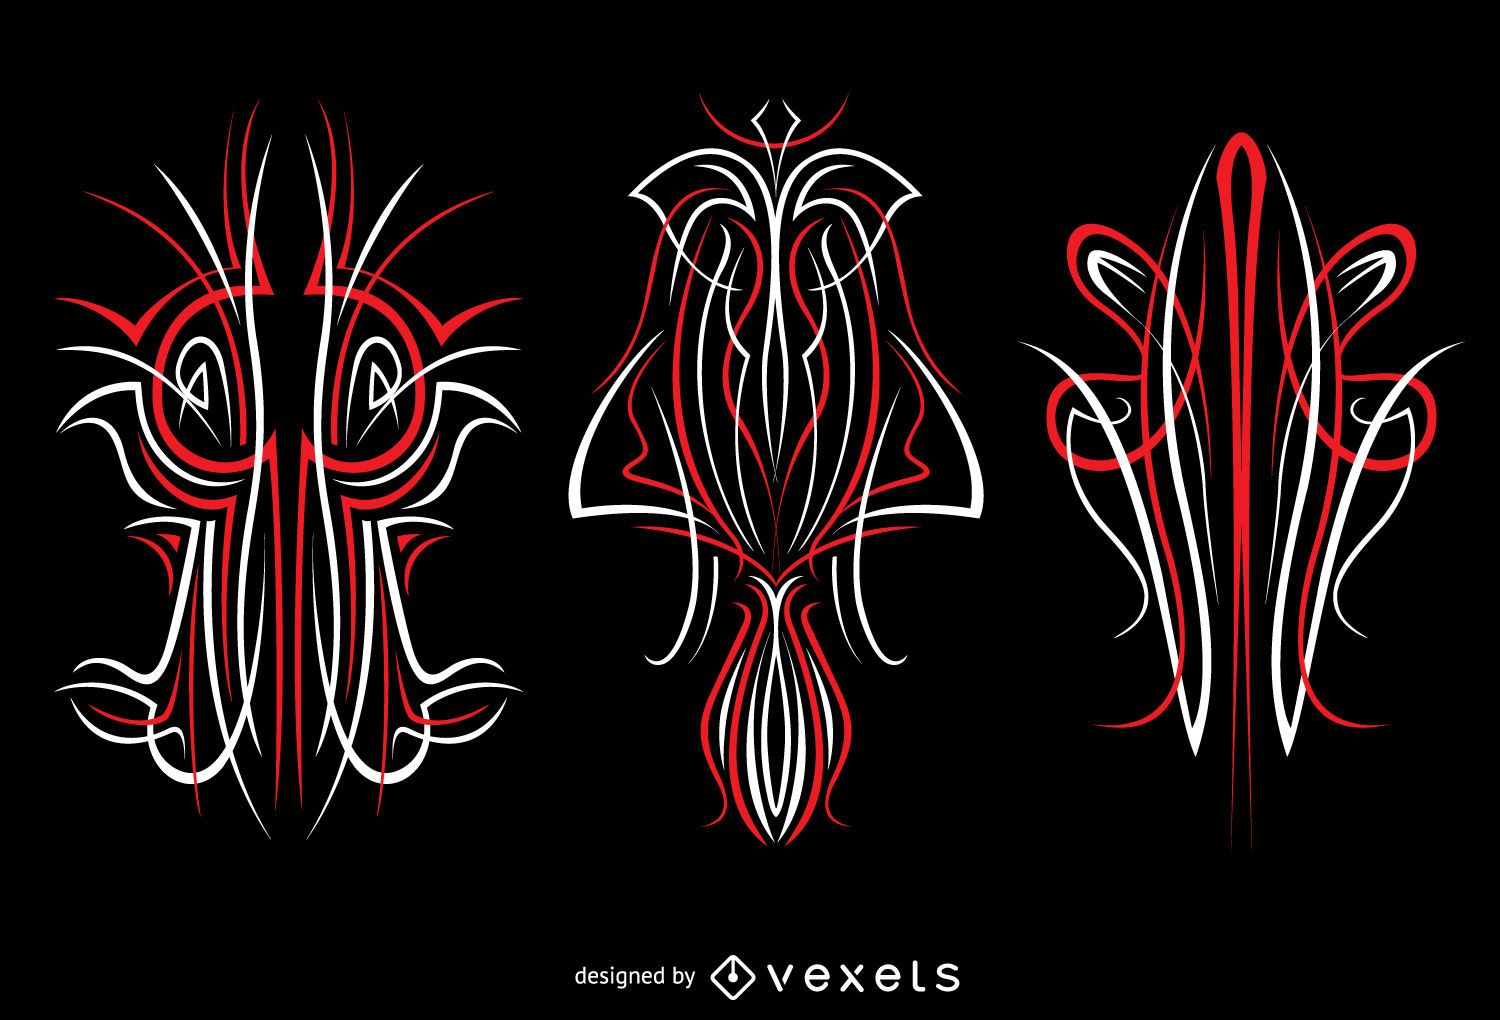 pinstripes vector graphics to download rh vexels com pinstripe vector art free pinstripe vector art